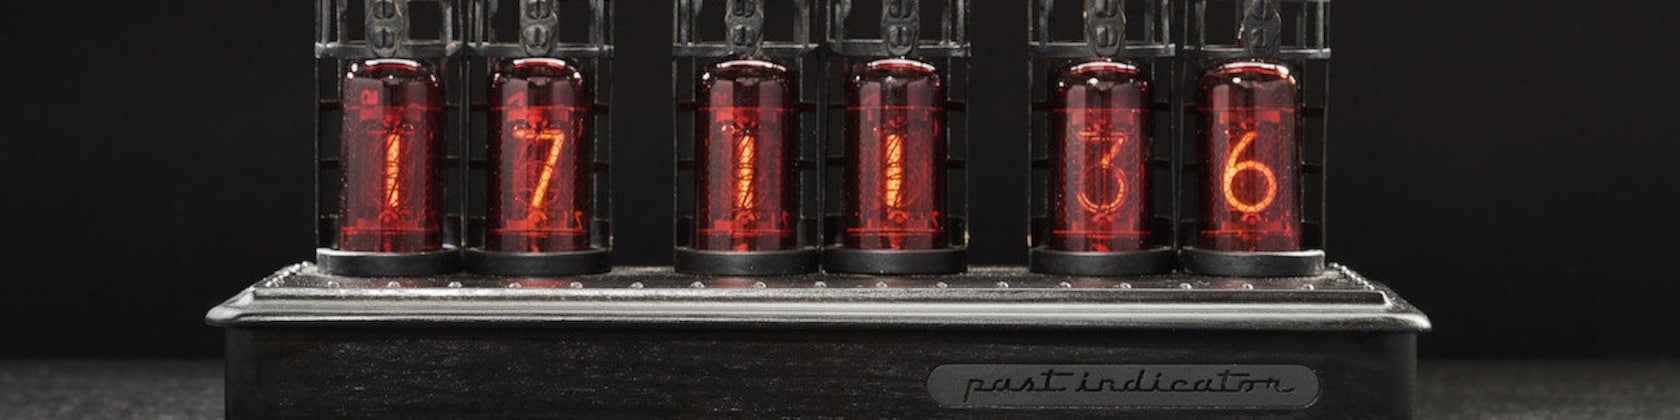 Nixie Tube Clocks Assembled From Premium By PastIndicator On Etsy